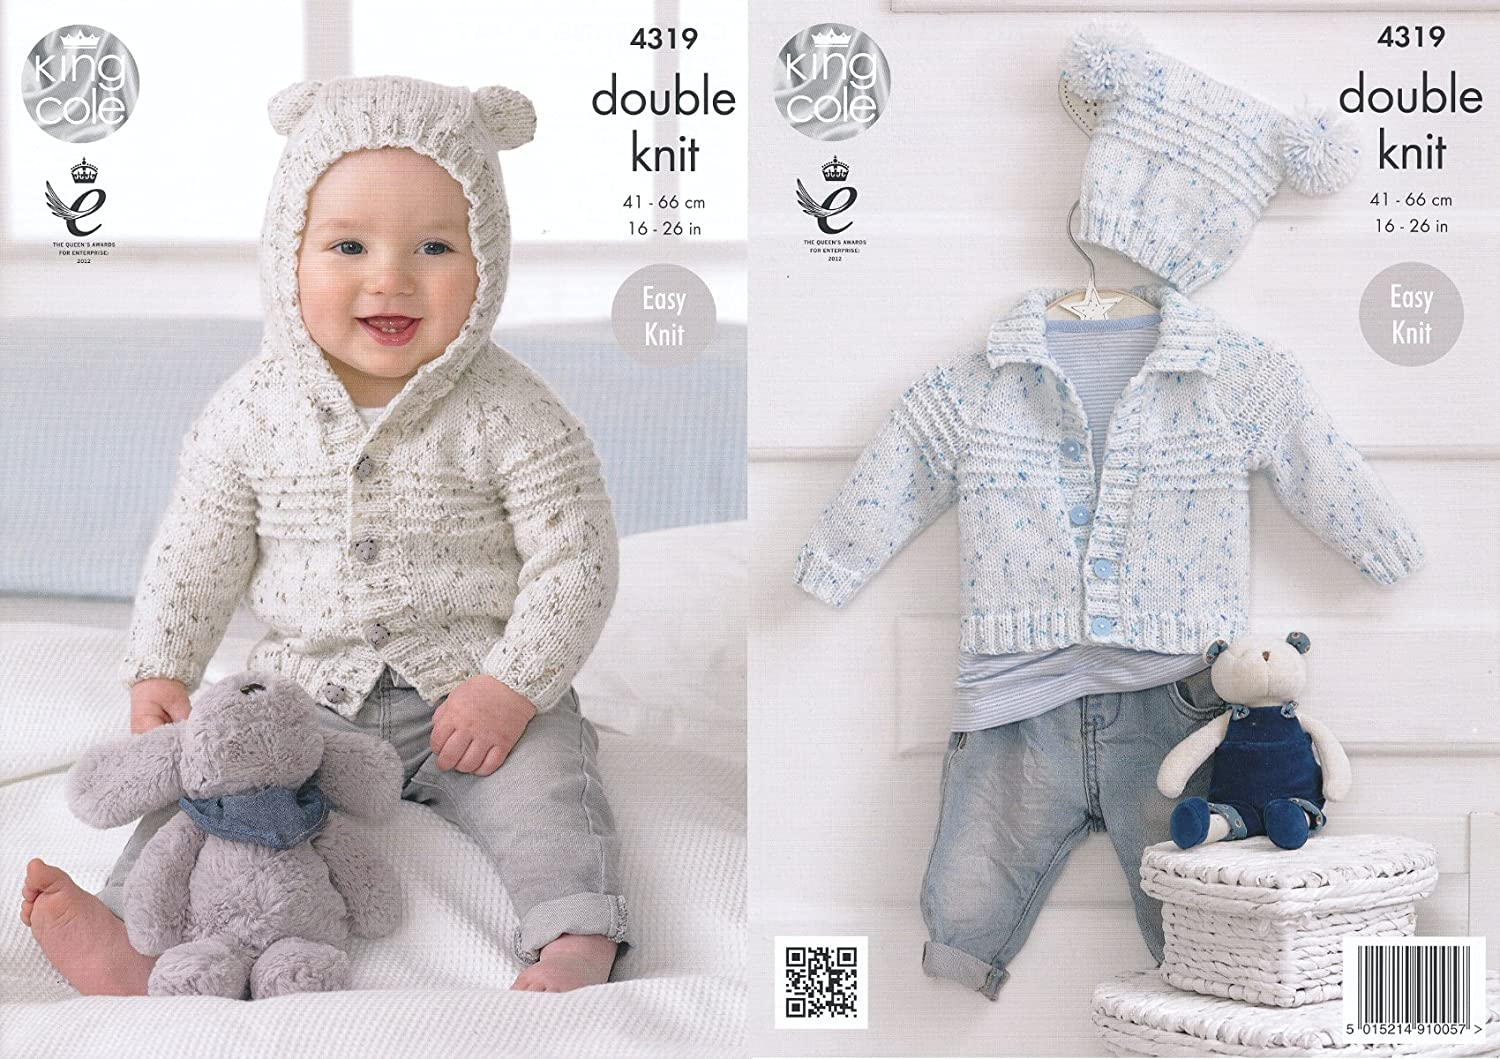 King Cole Double Knitting Pattern Baby Hooded or Collared Cardigan ...